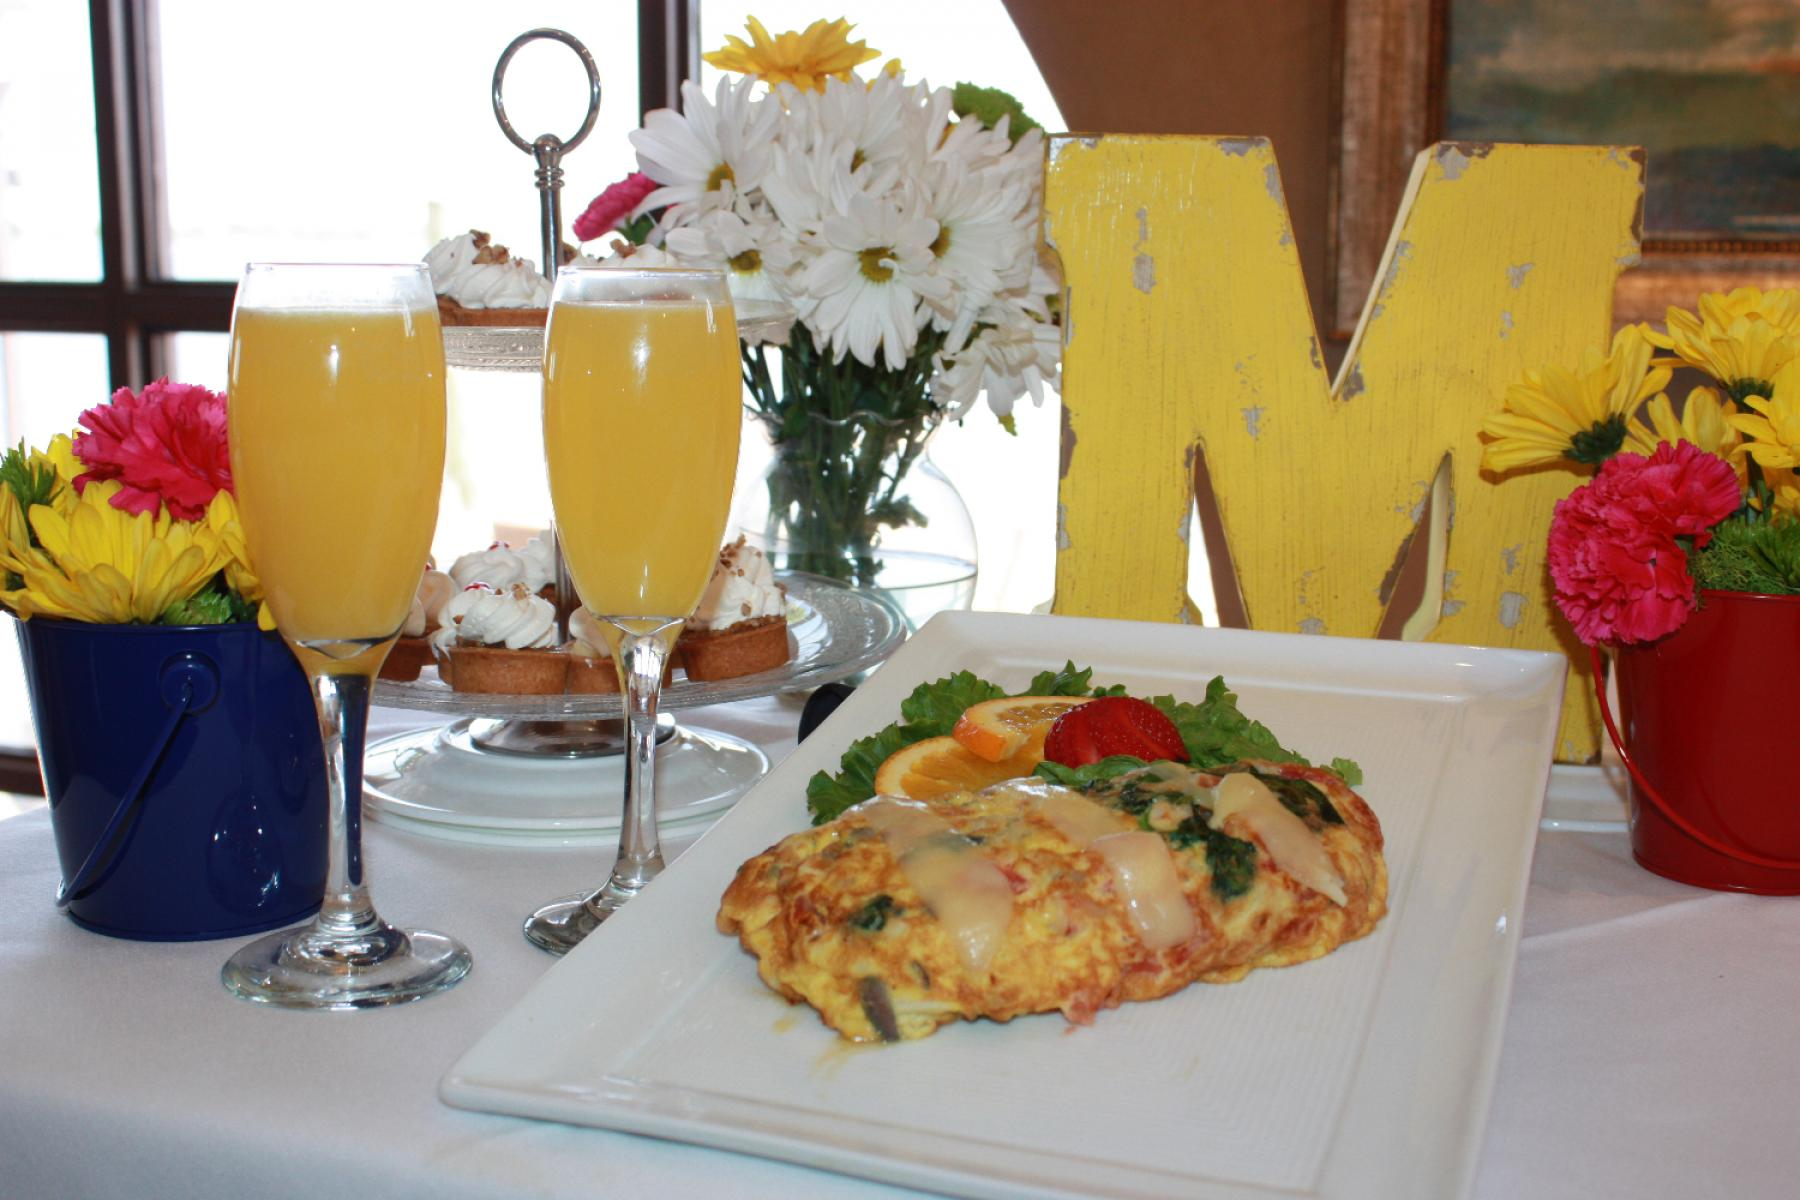 MOTHER'S DAY BRUNCH BUFFET IN DOWNTOWN BRADENTON